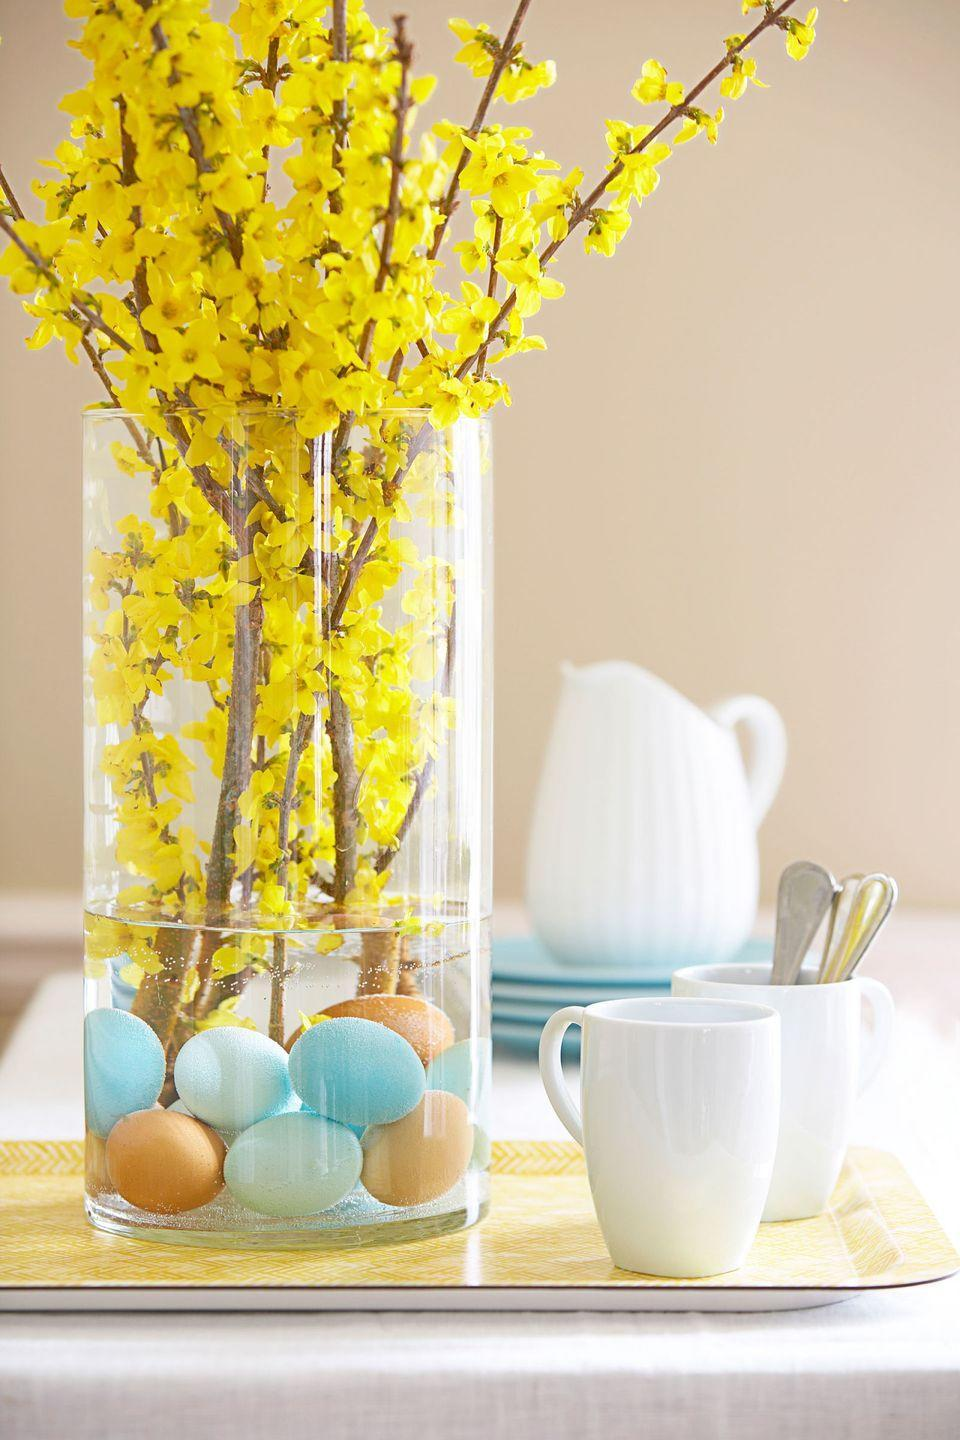 """<p>Brilliant yellow forsythia comes off as even more vibrant when paired with hard-boiled eggs dyed a soft blue and brown. </p><p><em><a href=""""http://www.goodhousekeeping.com/holidays/easter-ideas/g1906/easter-flowers/http://www.goodhousekeeping.com/holidays/easter-ideas/g1906/easter-flowers/?slide=14"""" rel=""""nofollow noopener"""" target=""""_blank"""" data-ylk=""""slk:See more at Good Housekeeping »"""" class=""""link rapid-noclick-resp"""">See more at Good Housekeeping »</a></em></p>"""